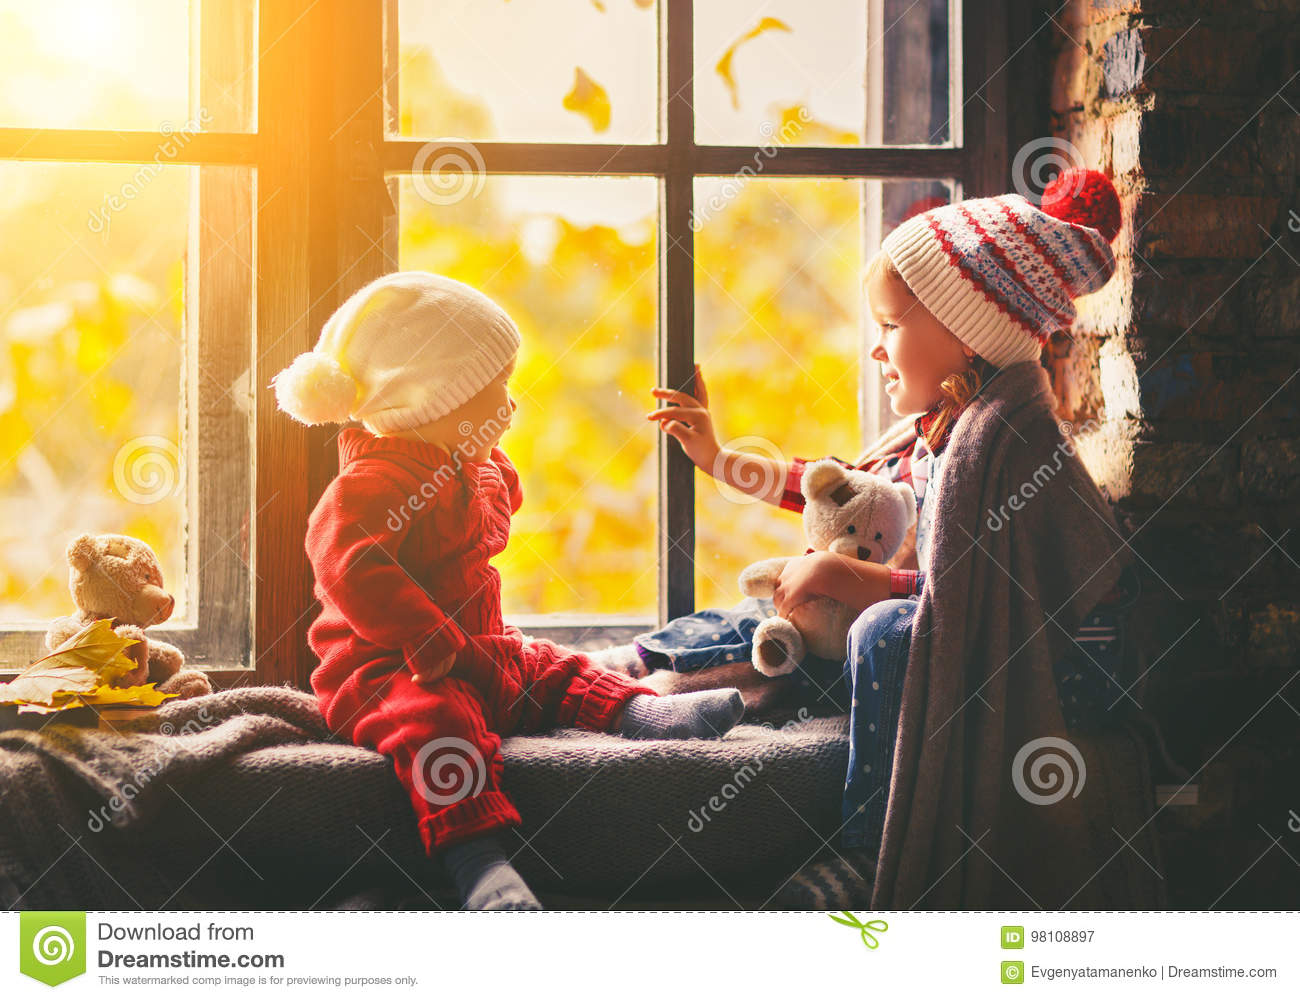 Children brother and sister admiring window for autumn